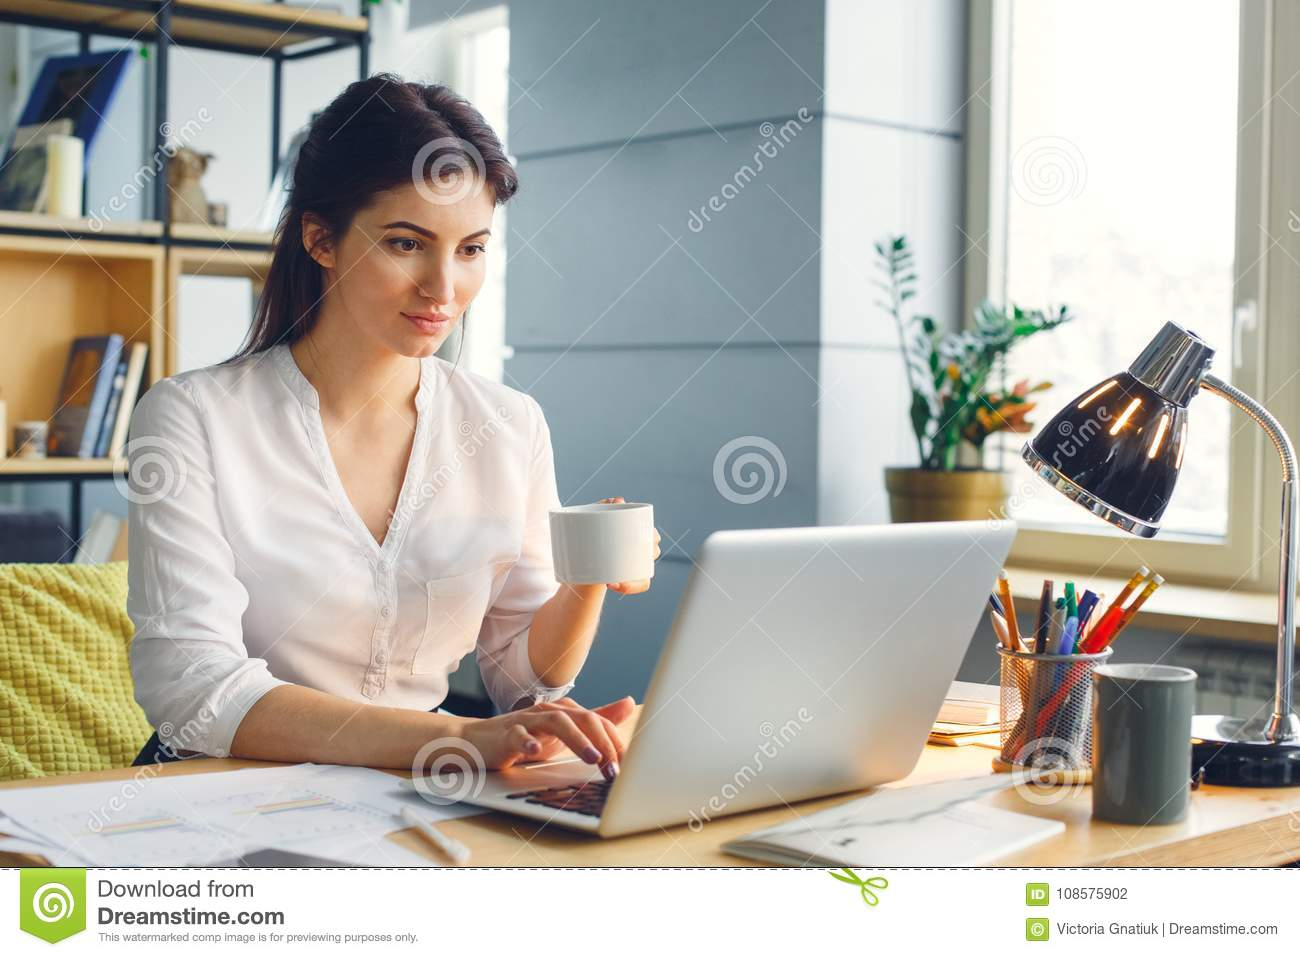 Pregnant business woman working at office motherhood sitting browsing laptop drinking coffee